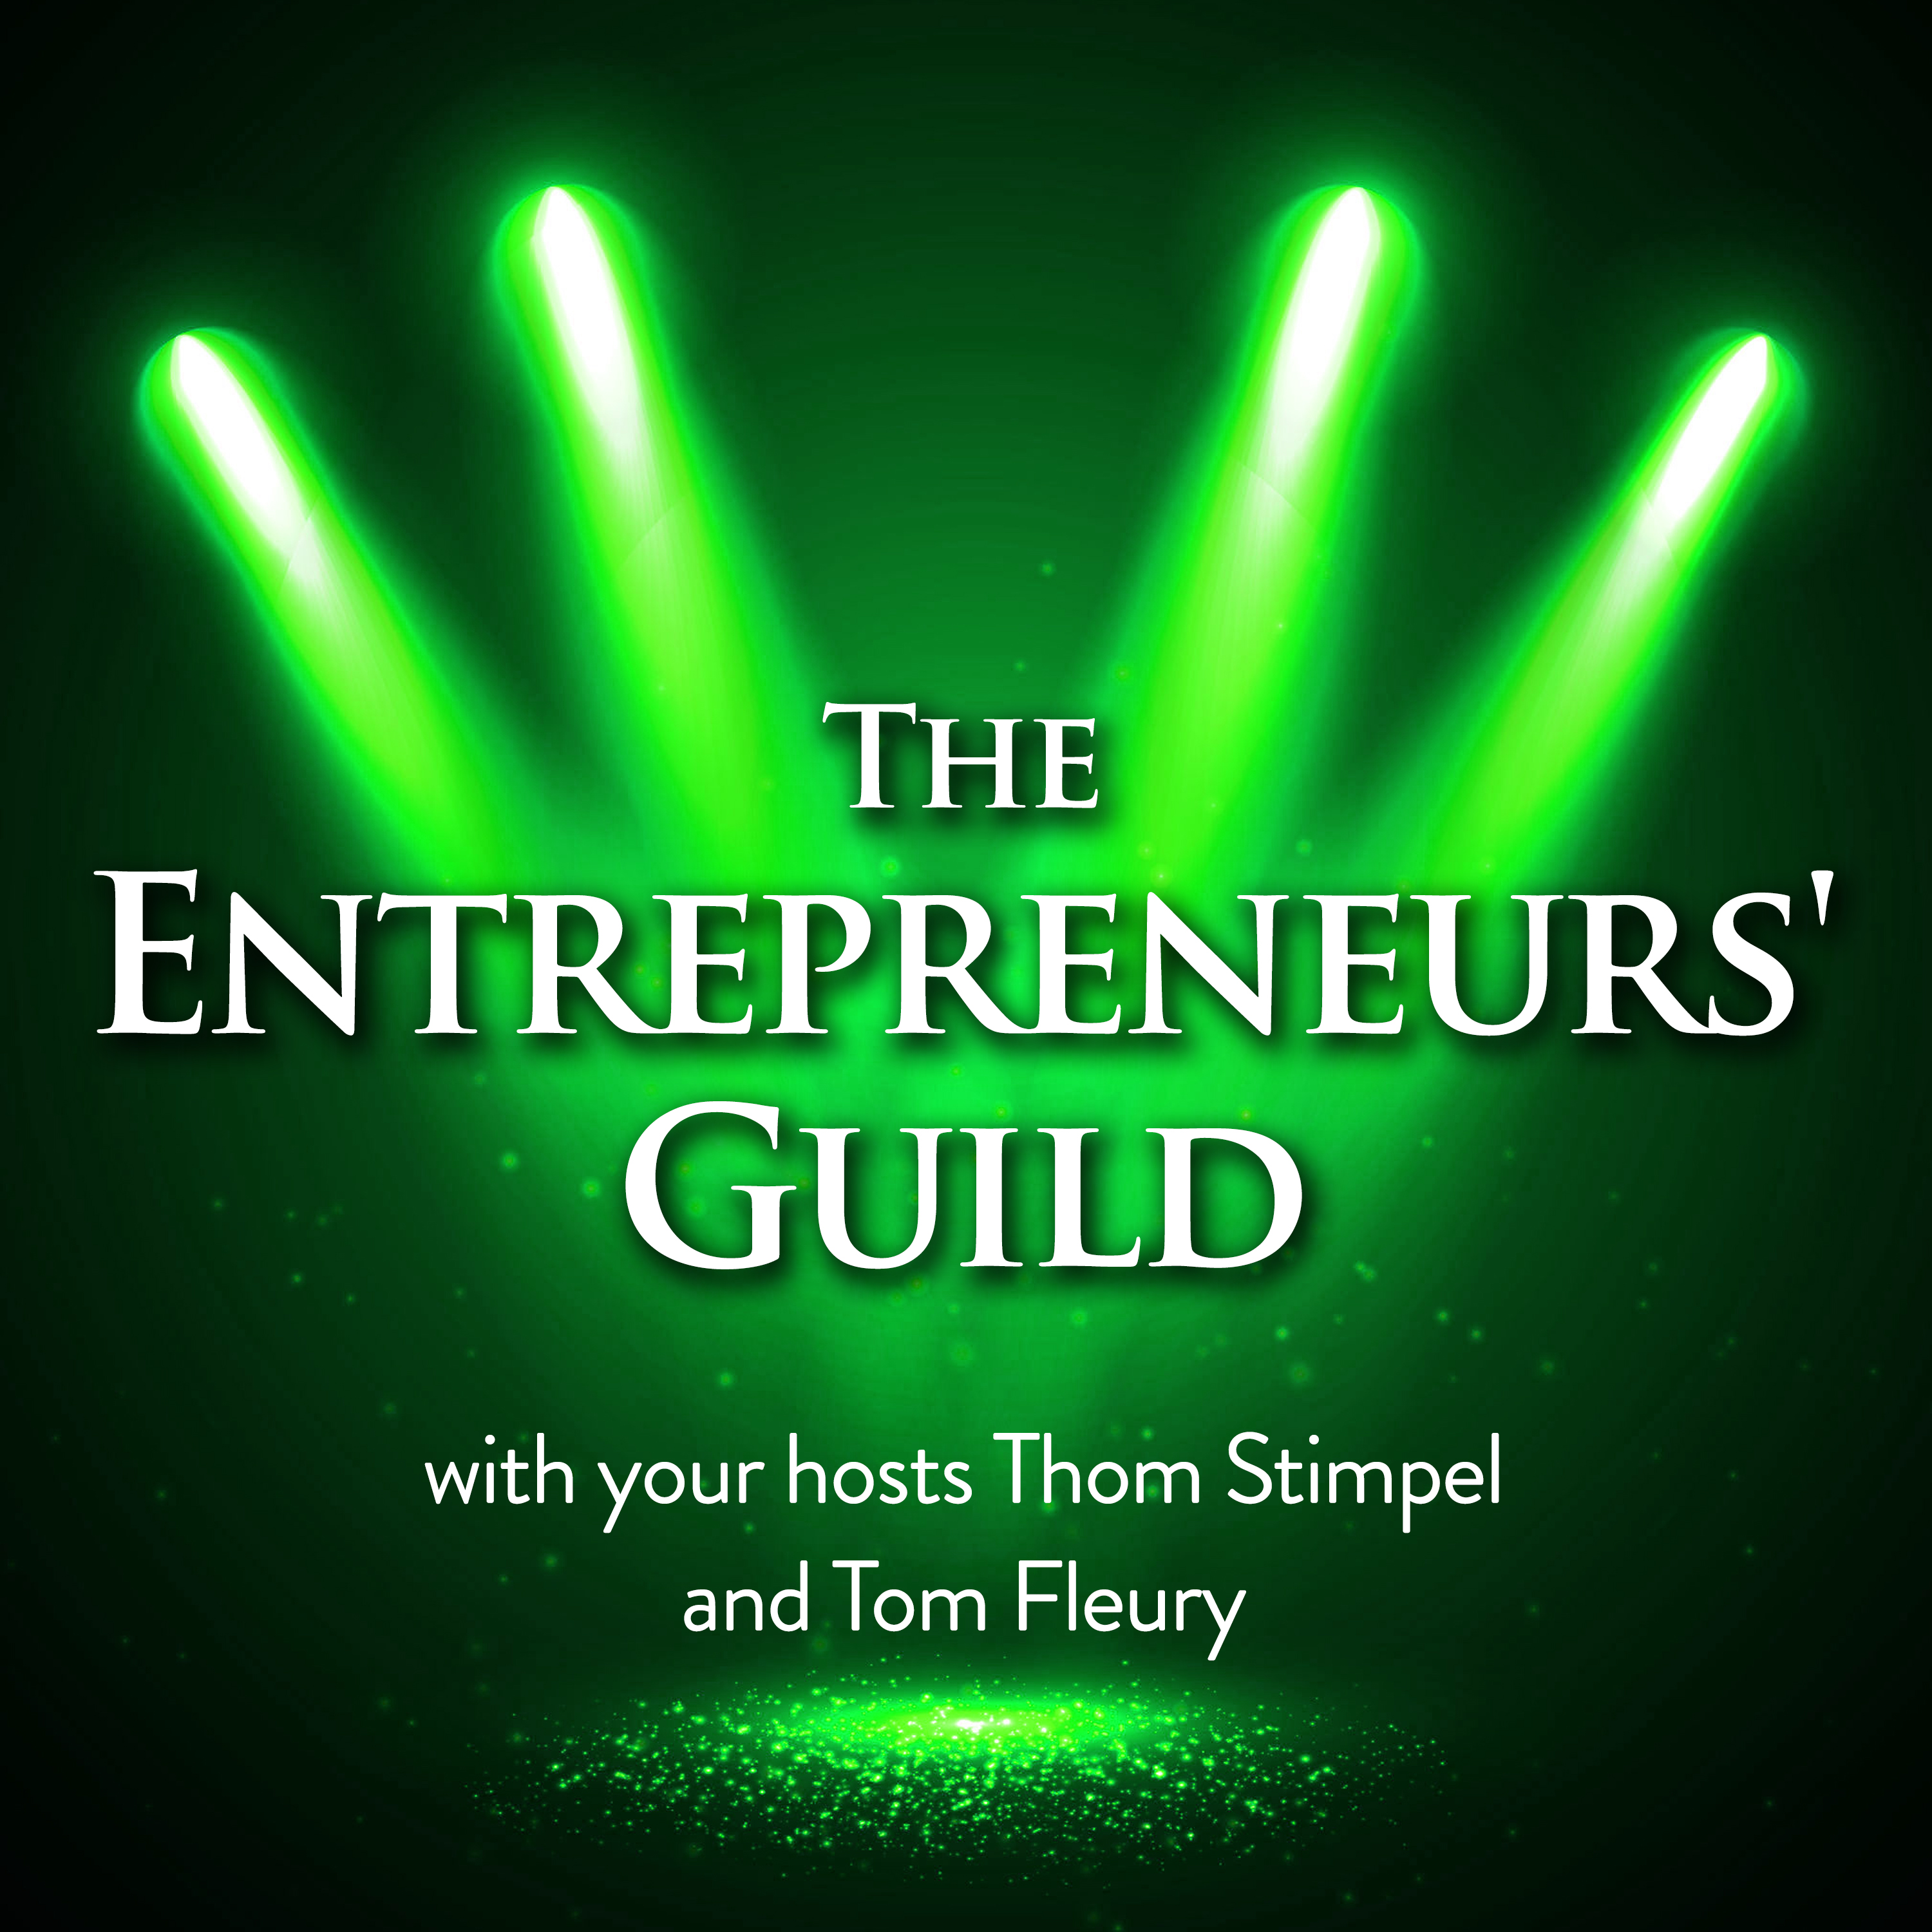 The Entrepreneurs' Guild Podcast show image